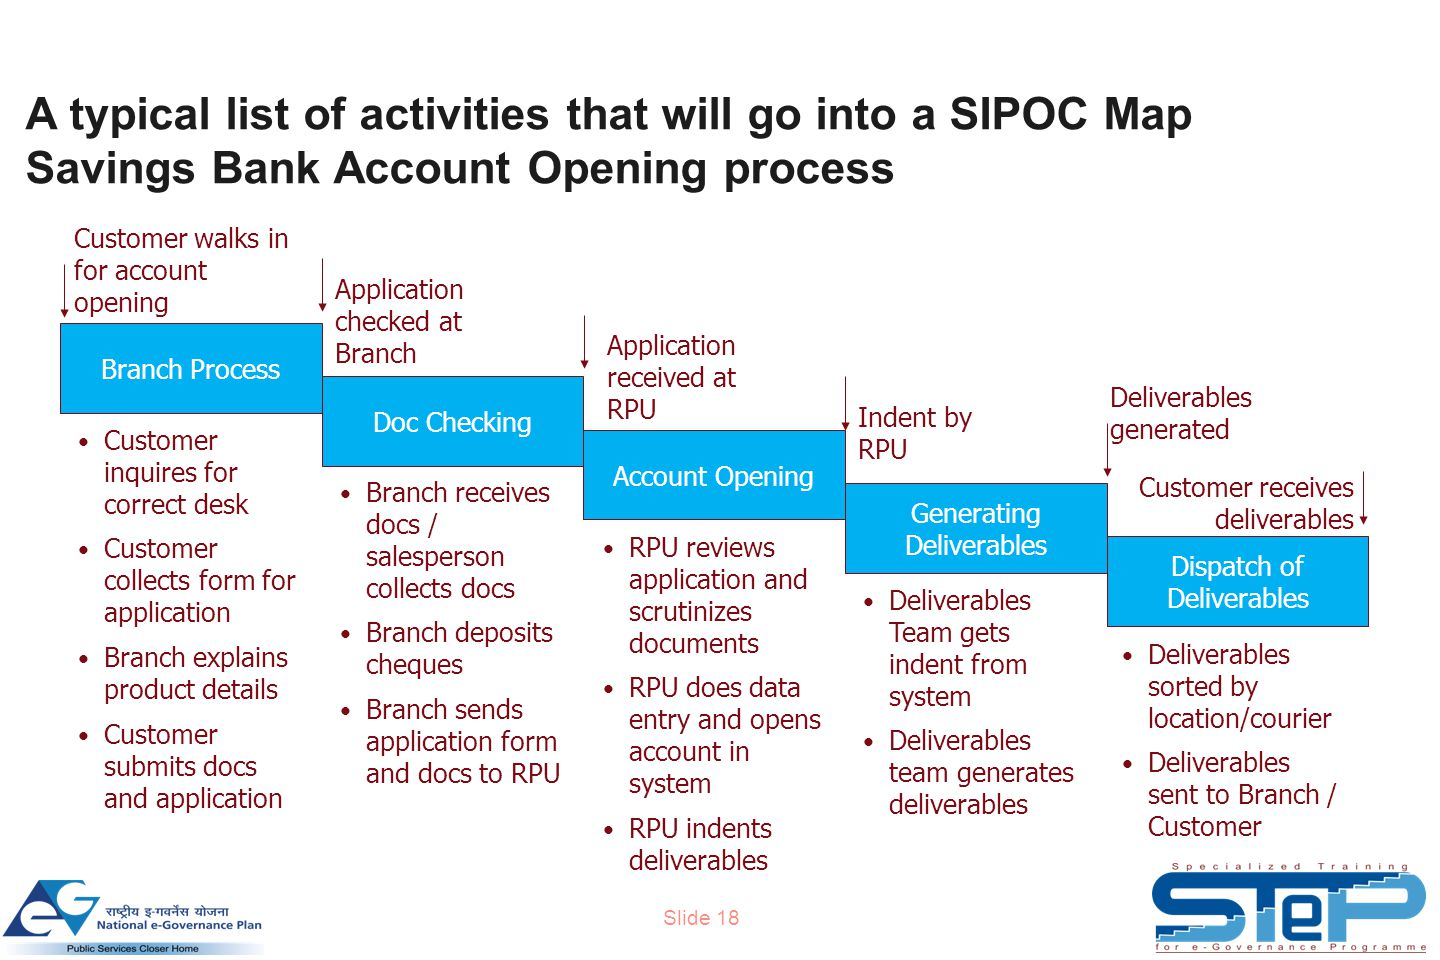 Slide 18 A typical list of activities that will go into a SIPOC Map Savings Bank Account Opening process Branch Process Doc Checking Account Opening Generating Deliverables Dispatch of Deliverables Customer walks in for account opening Application checked at Branch Application received at RPU Indent by RPU Deliverables generated Customer receives deliverables Customer inquires for correct desk Customer collects form for application Branch explains product details Customer submits docs and application Branch receives docs / salesperson collects docs Branch deposits cheques Branch sends application form and docs to RPU RPU reviews application and scrutinizes documents RPU does data entry and opens account in system RPU indents deliverables Deliverables Team gets indent from system Deliverables team generates deliverables Deliverables sorted by location/courier Deliverables sent to Branch / Customer